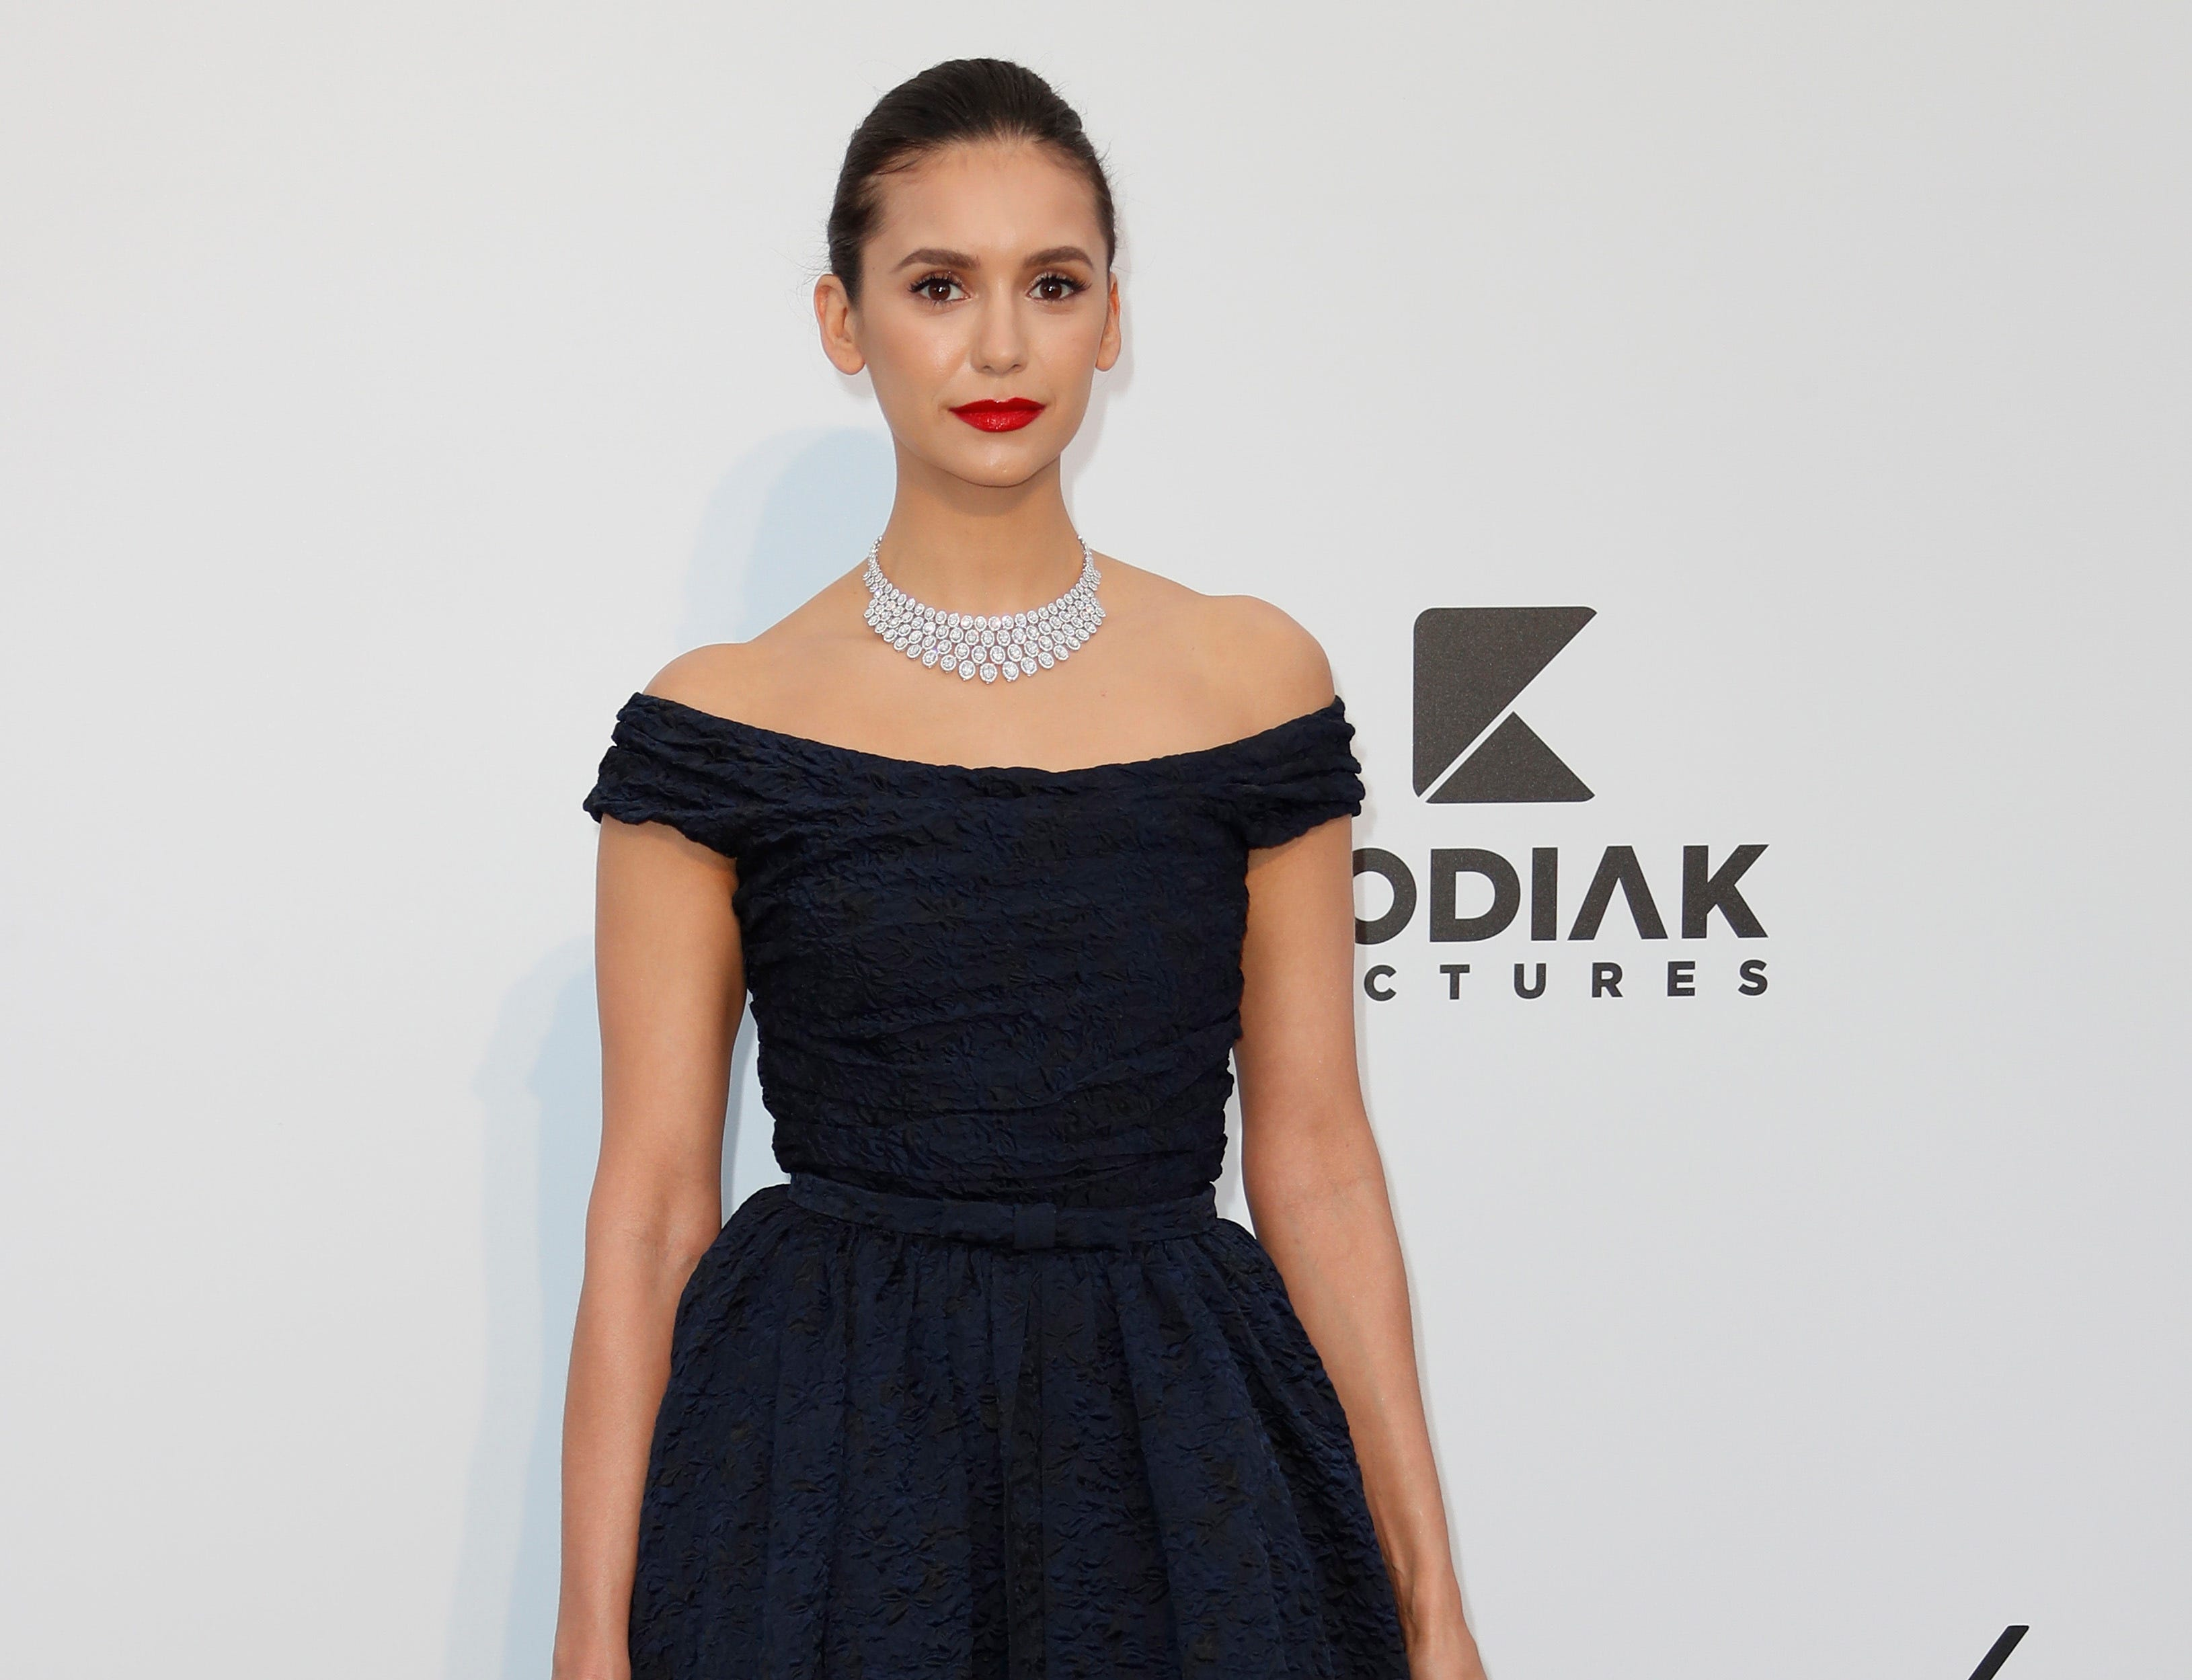 epa07595108 Canadian actress Nina Dobrev attends the Cinema Against AIDS amfAR gala 2019 held at the Hotel du Cap, Eden Roc in Cap d'Antibes, France, 23 May 2019, within the scope of the 72nd annual Cannes Film Festival that runs from 14 to 25 May.  EPA-EFE/SEBASTIEN NOGIER